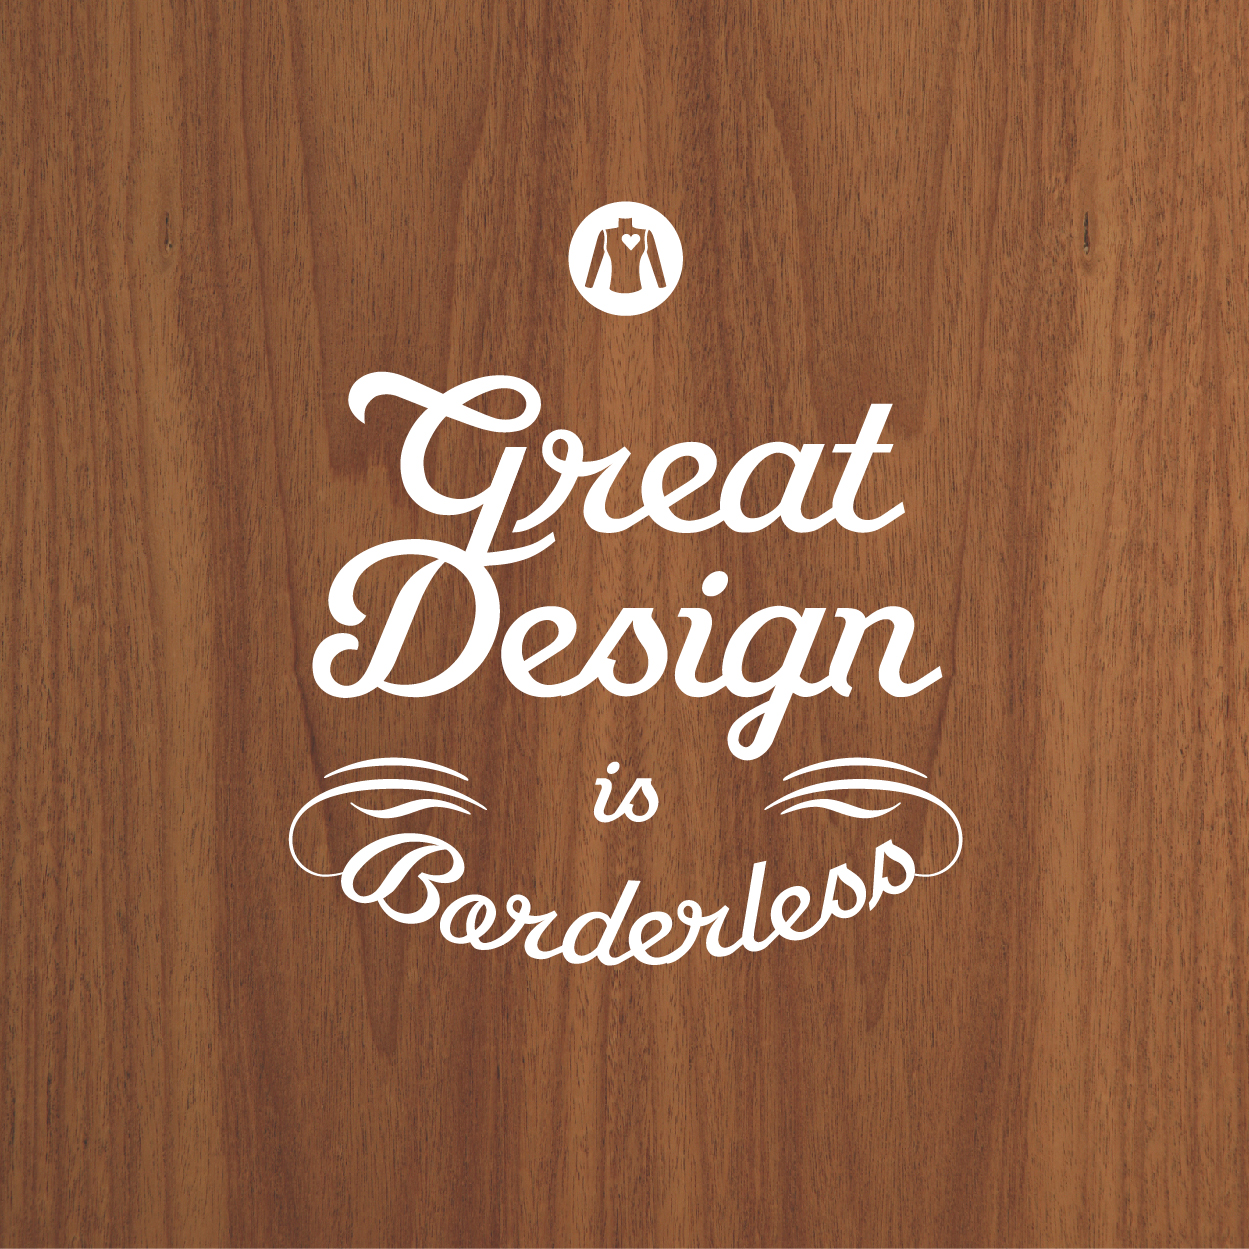 greatdesign_on_wood.jpg